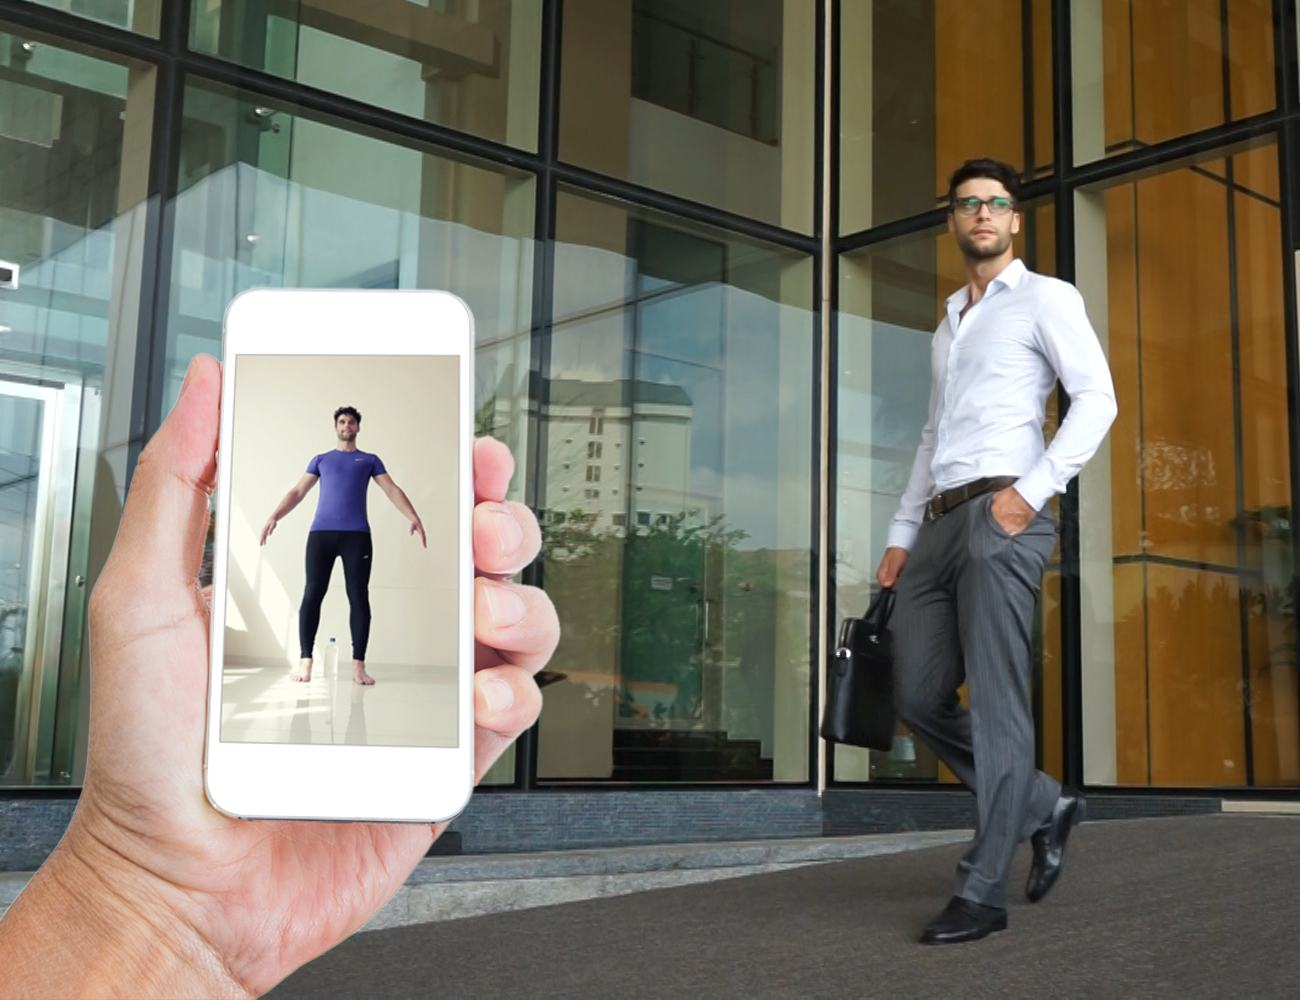 UKYS – Perfect Tailored Shirts Measured From Your Phone